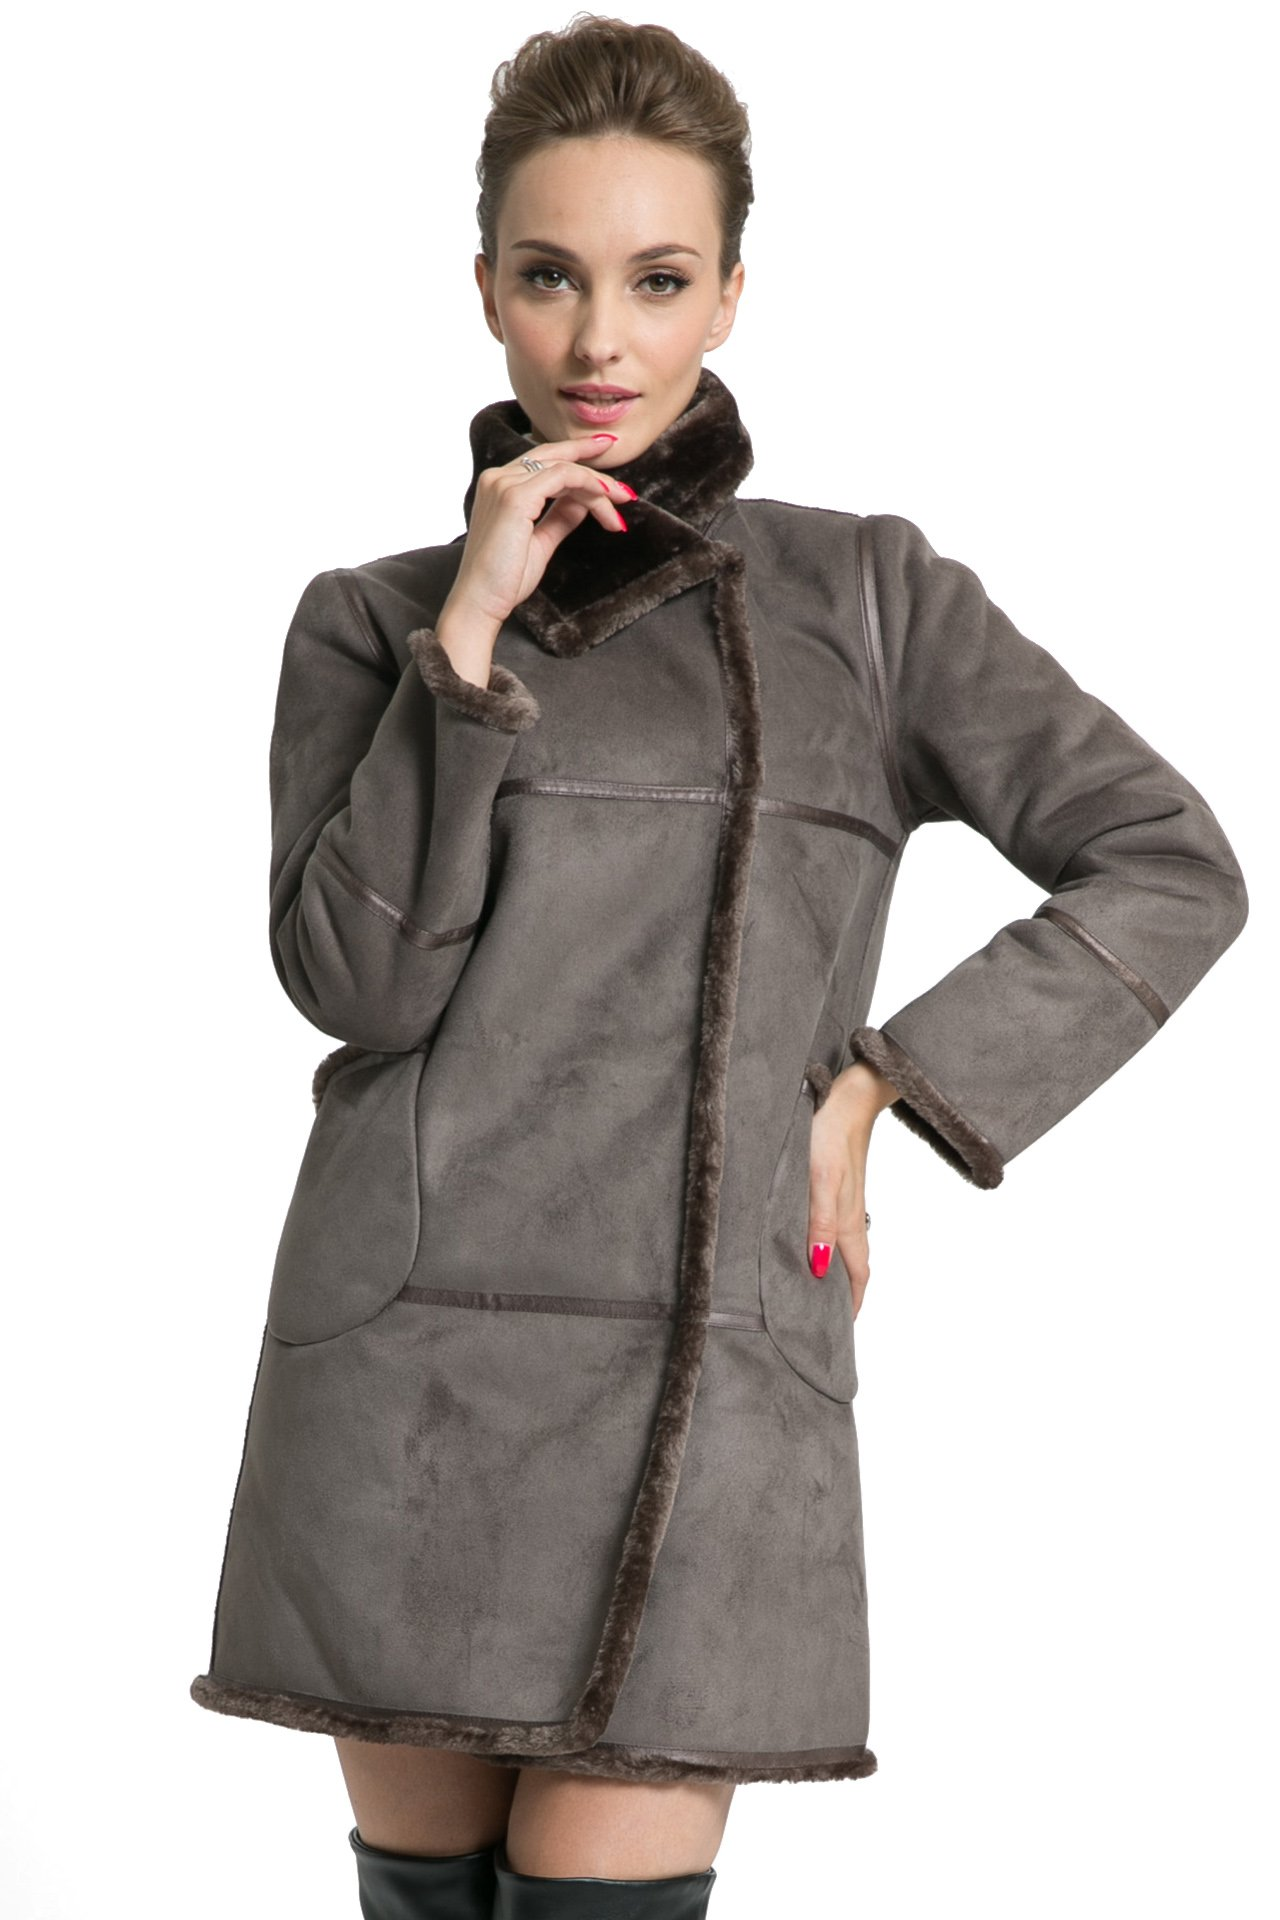 Ovonzo Women's Winter Style Soft Faux Suede Leather Pea Coat Hip Length Grey Size M